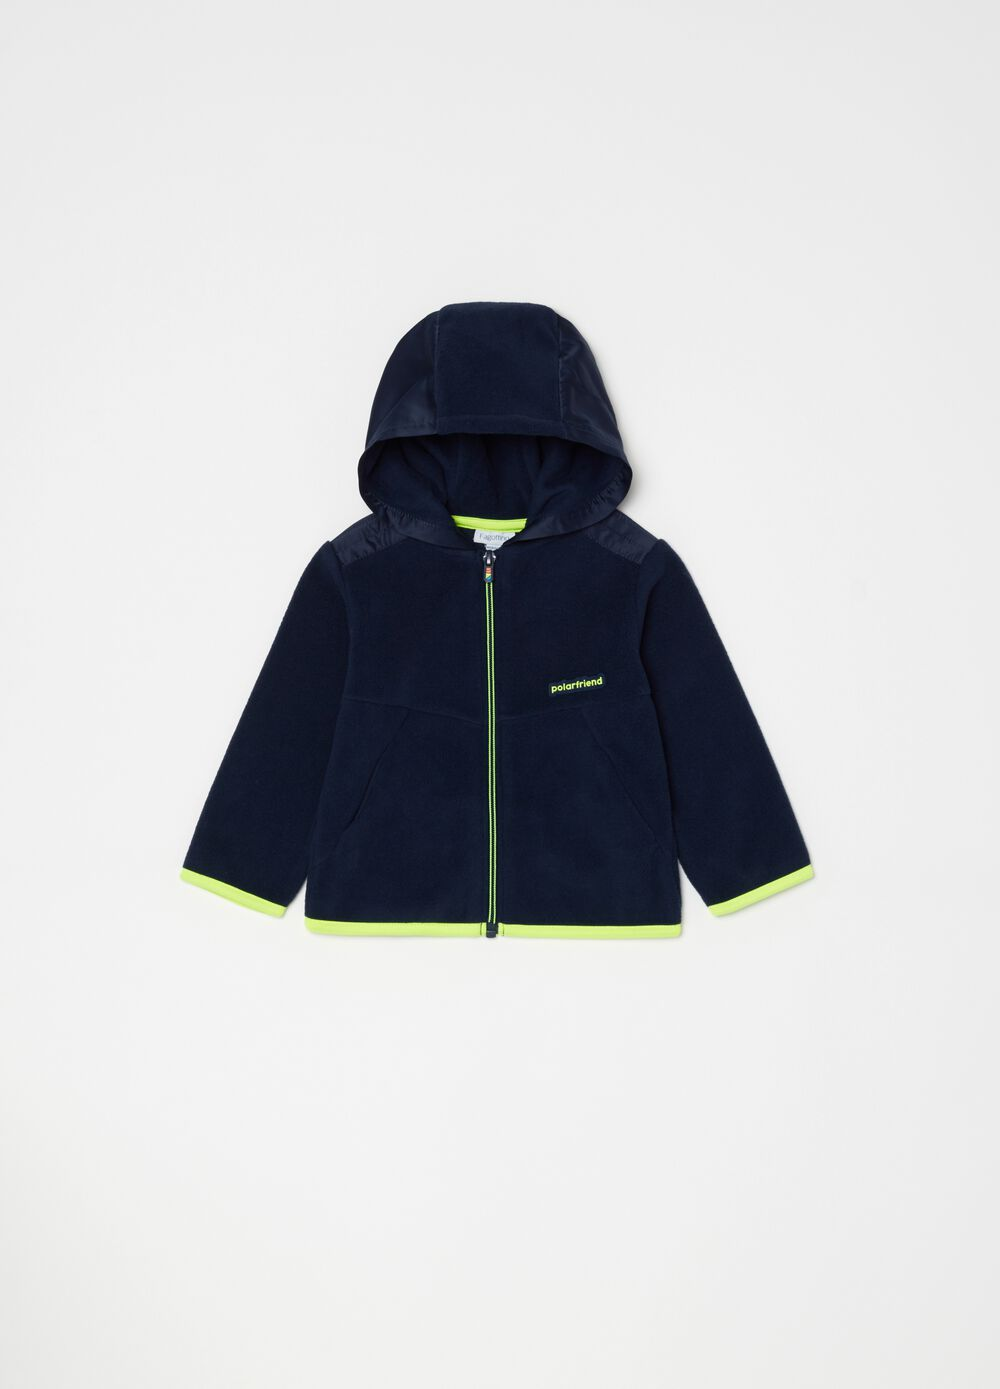 Sustainable fleece sweatshirt with hood